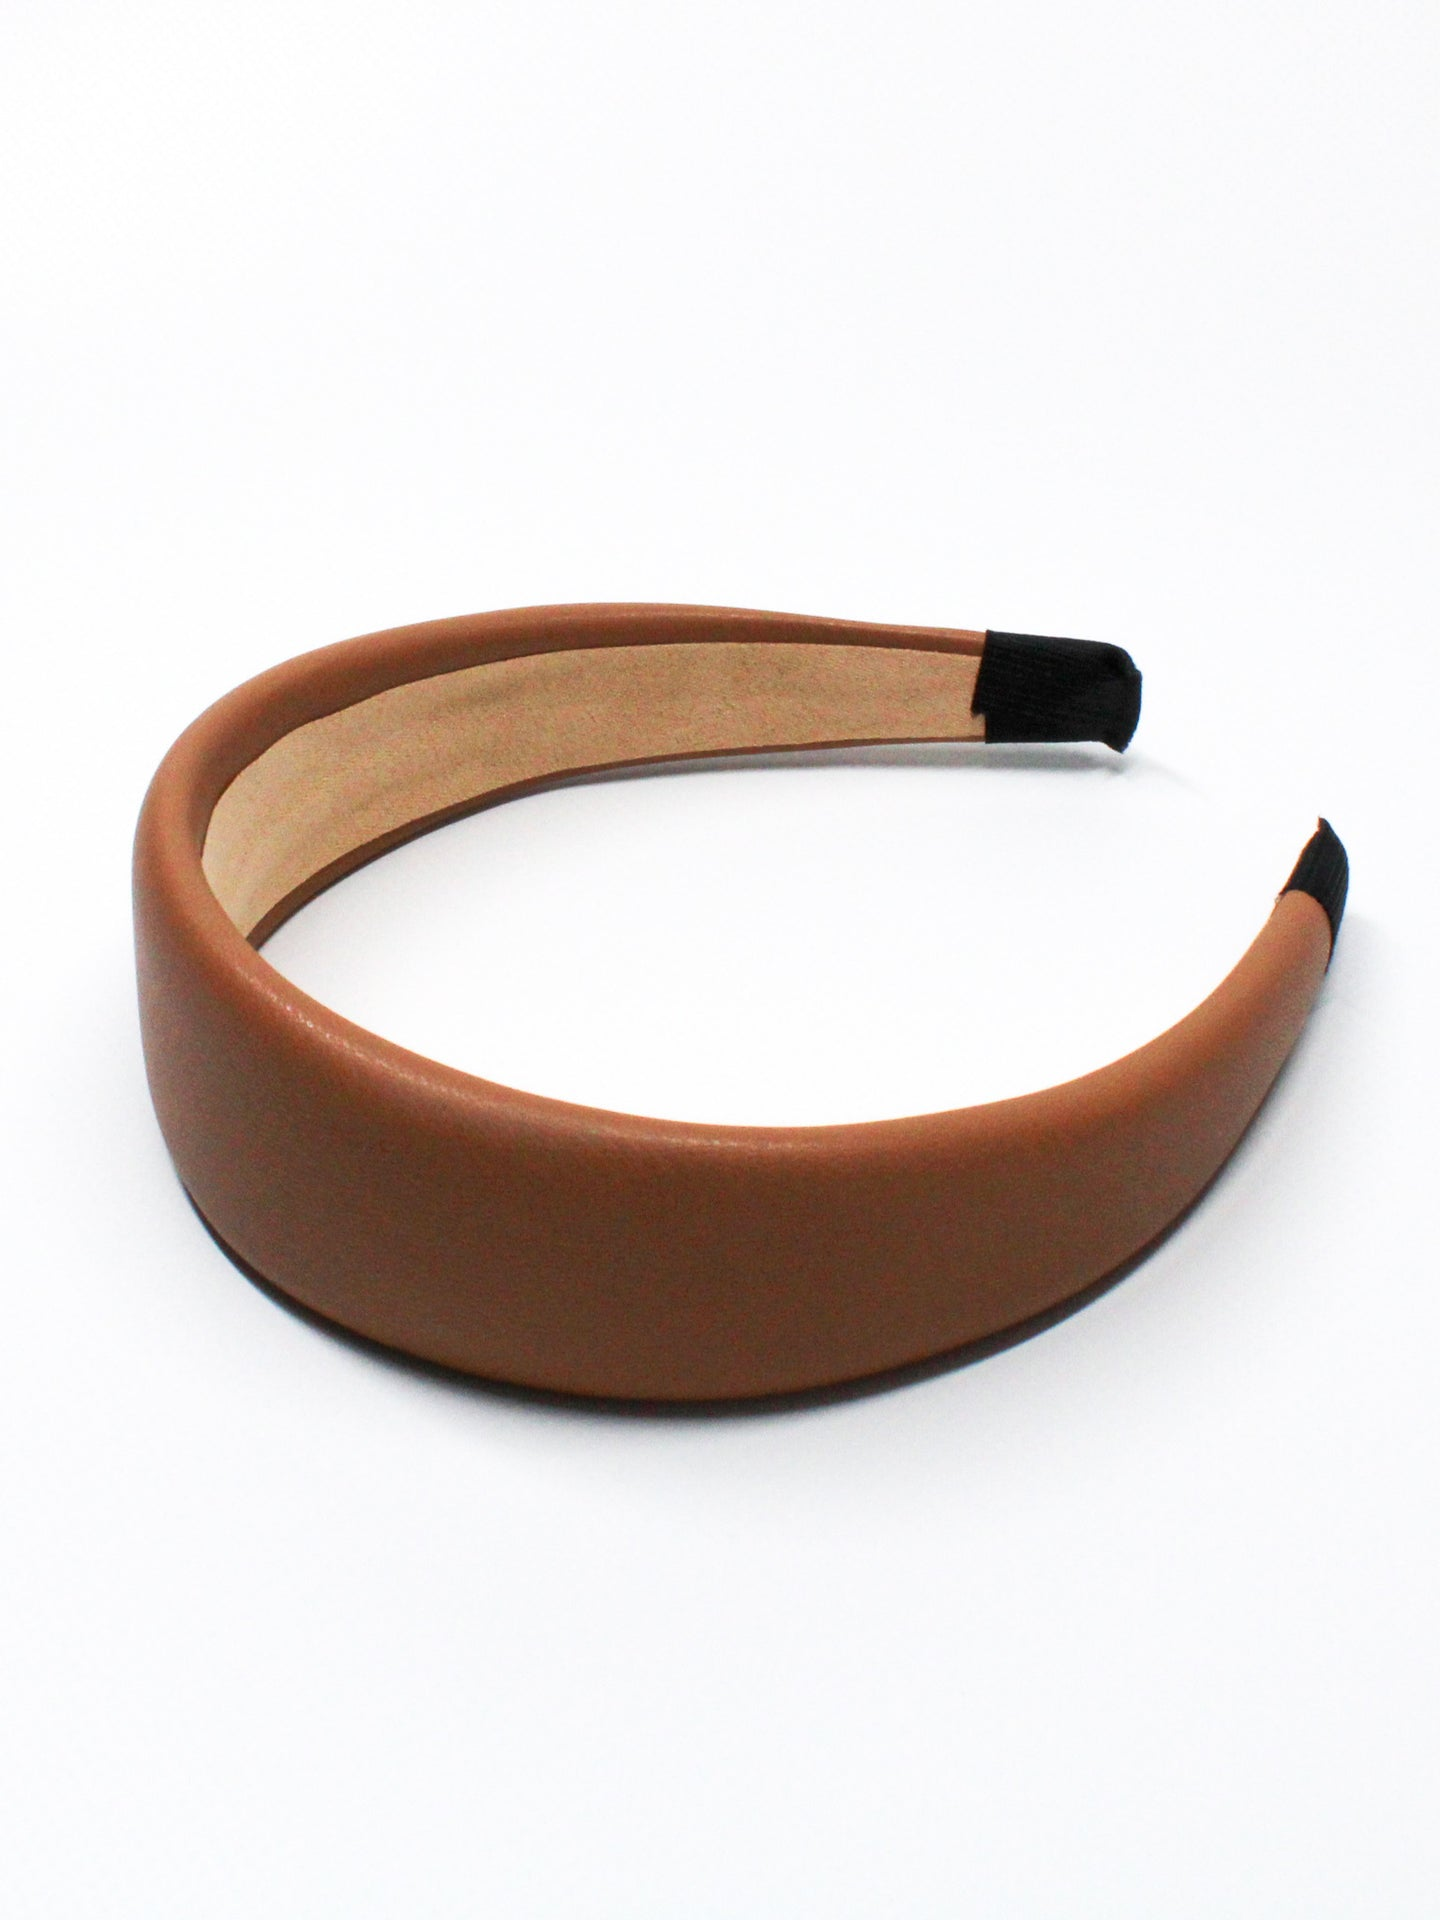 Kady Headband - Tan